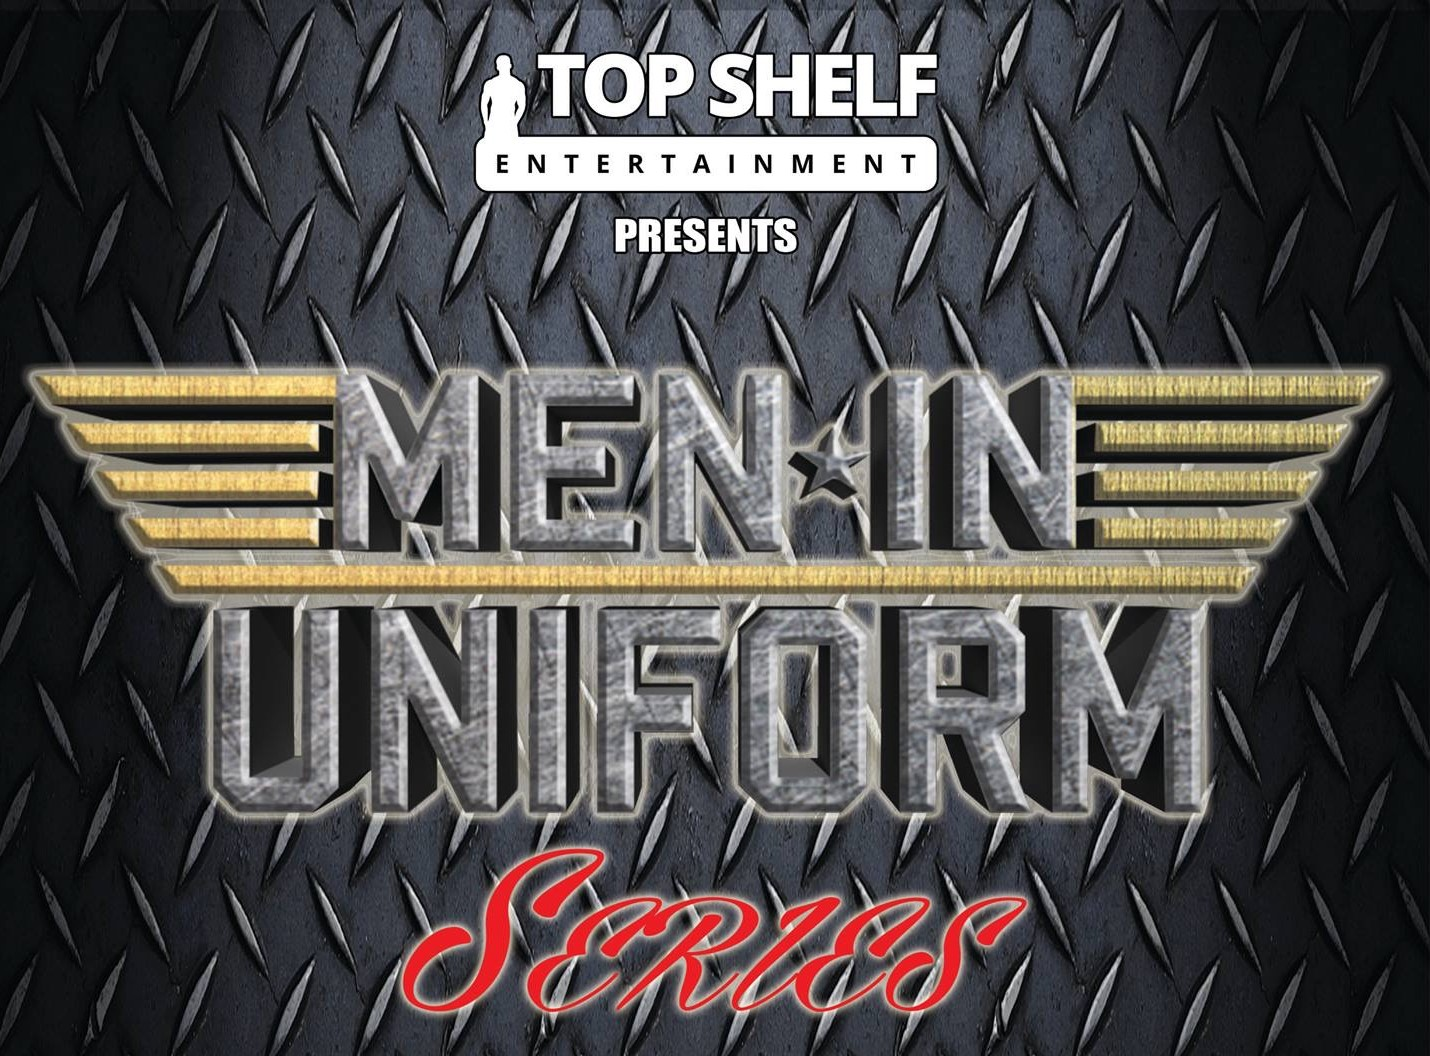 Tickets for Top Shelf: Men in Uniform - Firey night in Fremantle from Ticketbooth